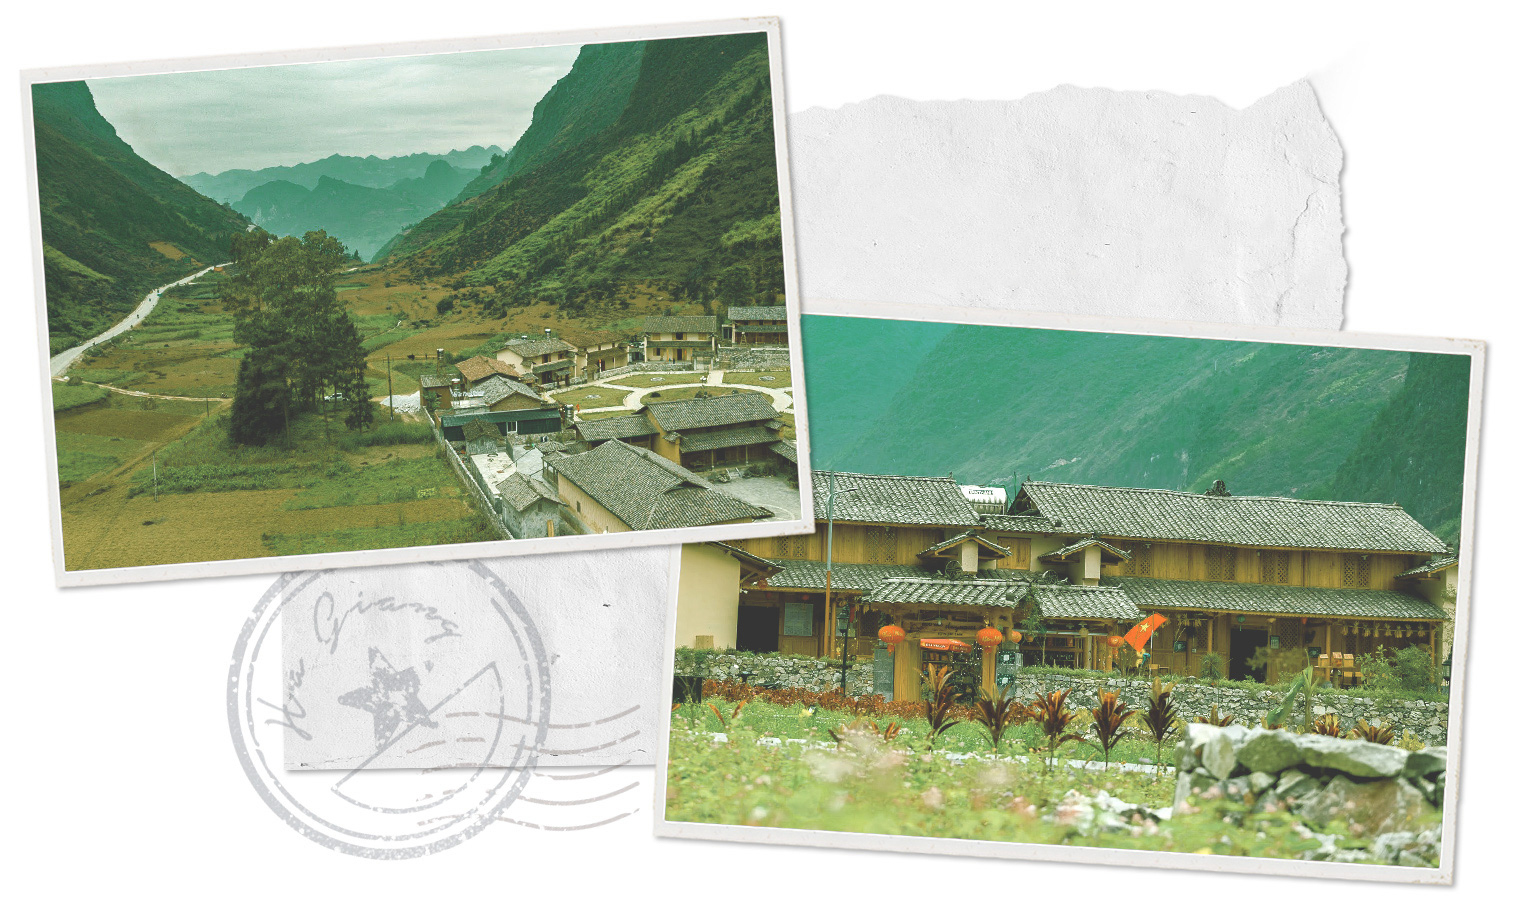 A cultural-tourism Mong village in Ha Giang Province, Vietnam.